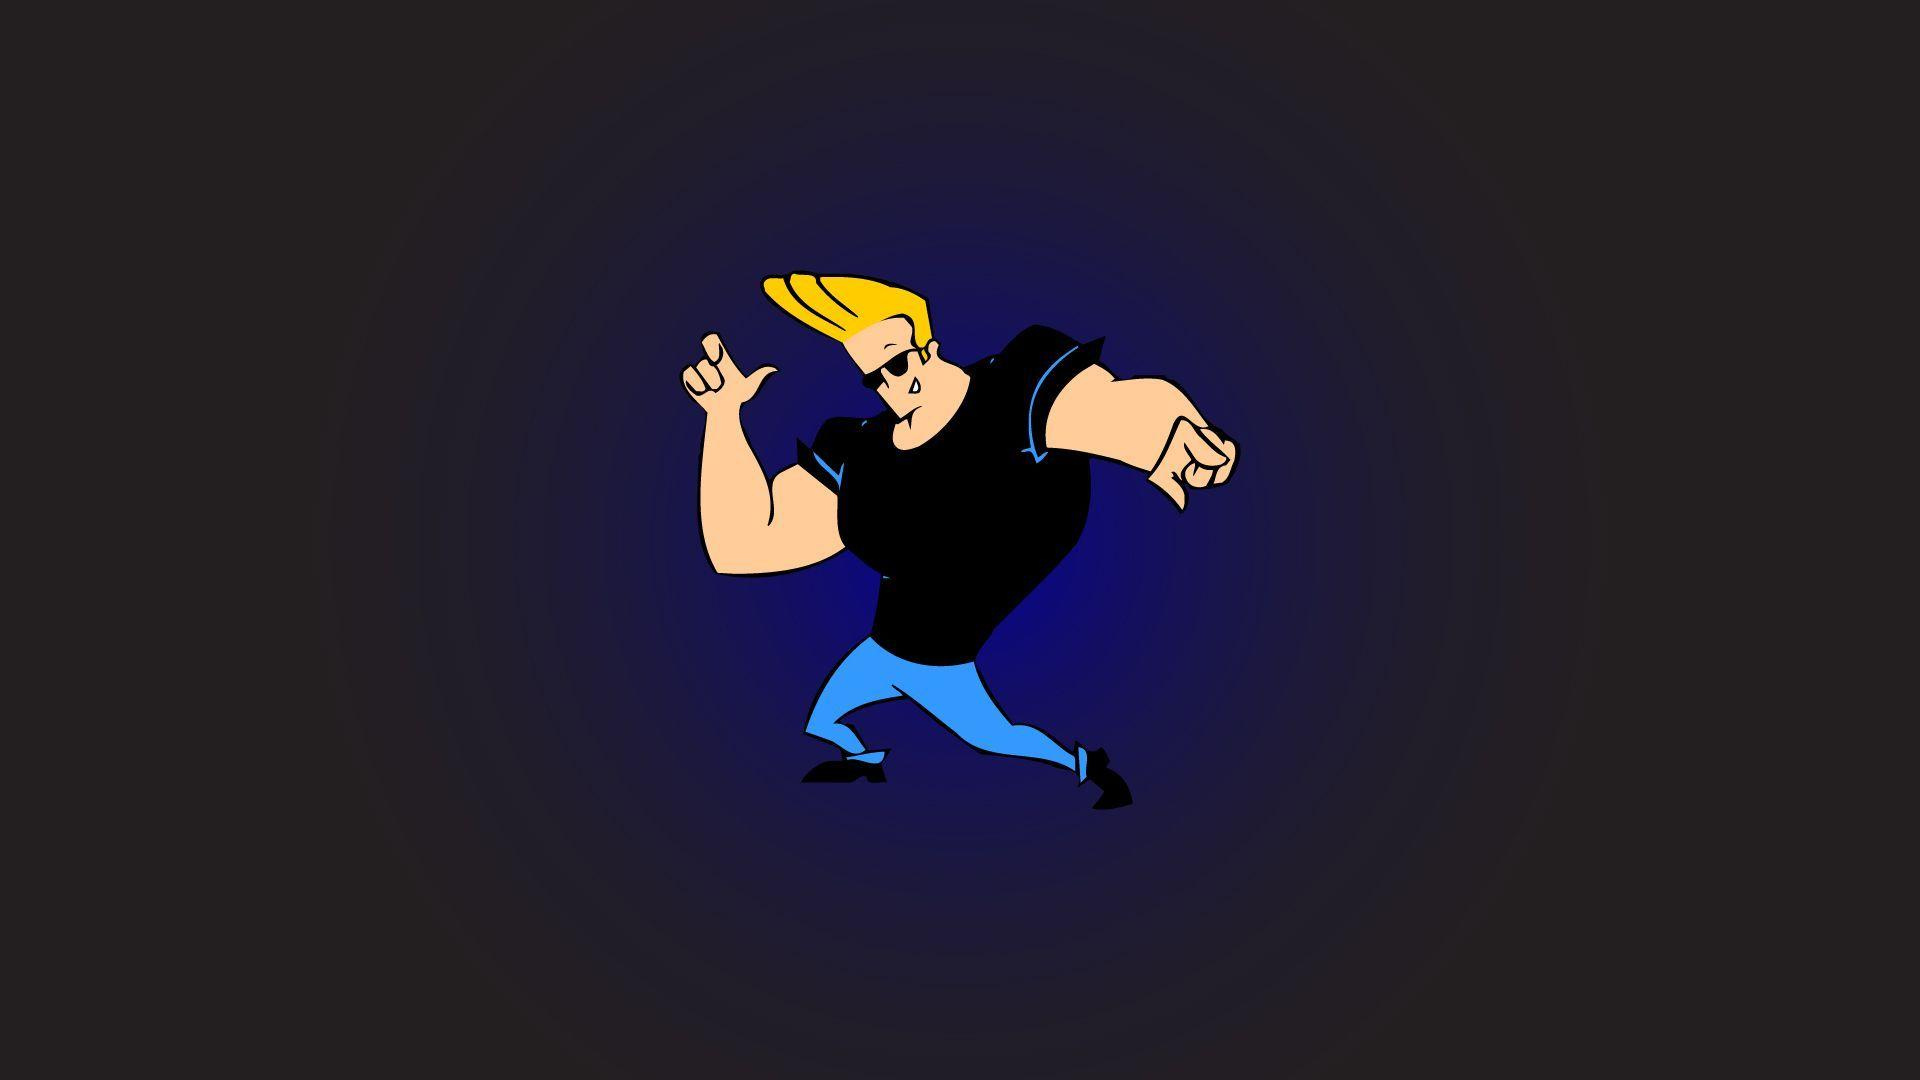 Johnny Bravo Images | WallPaper Glow